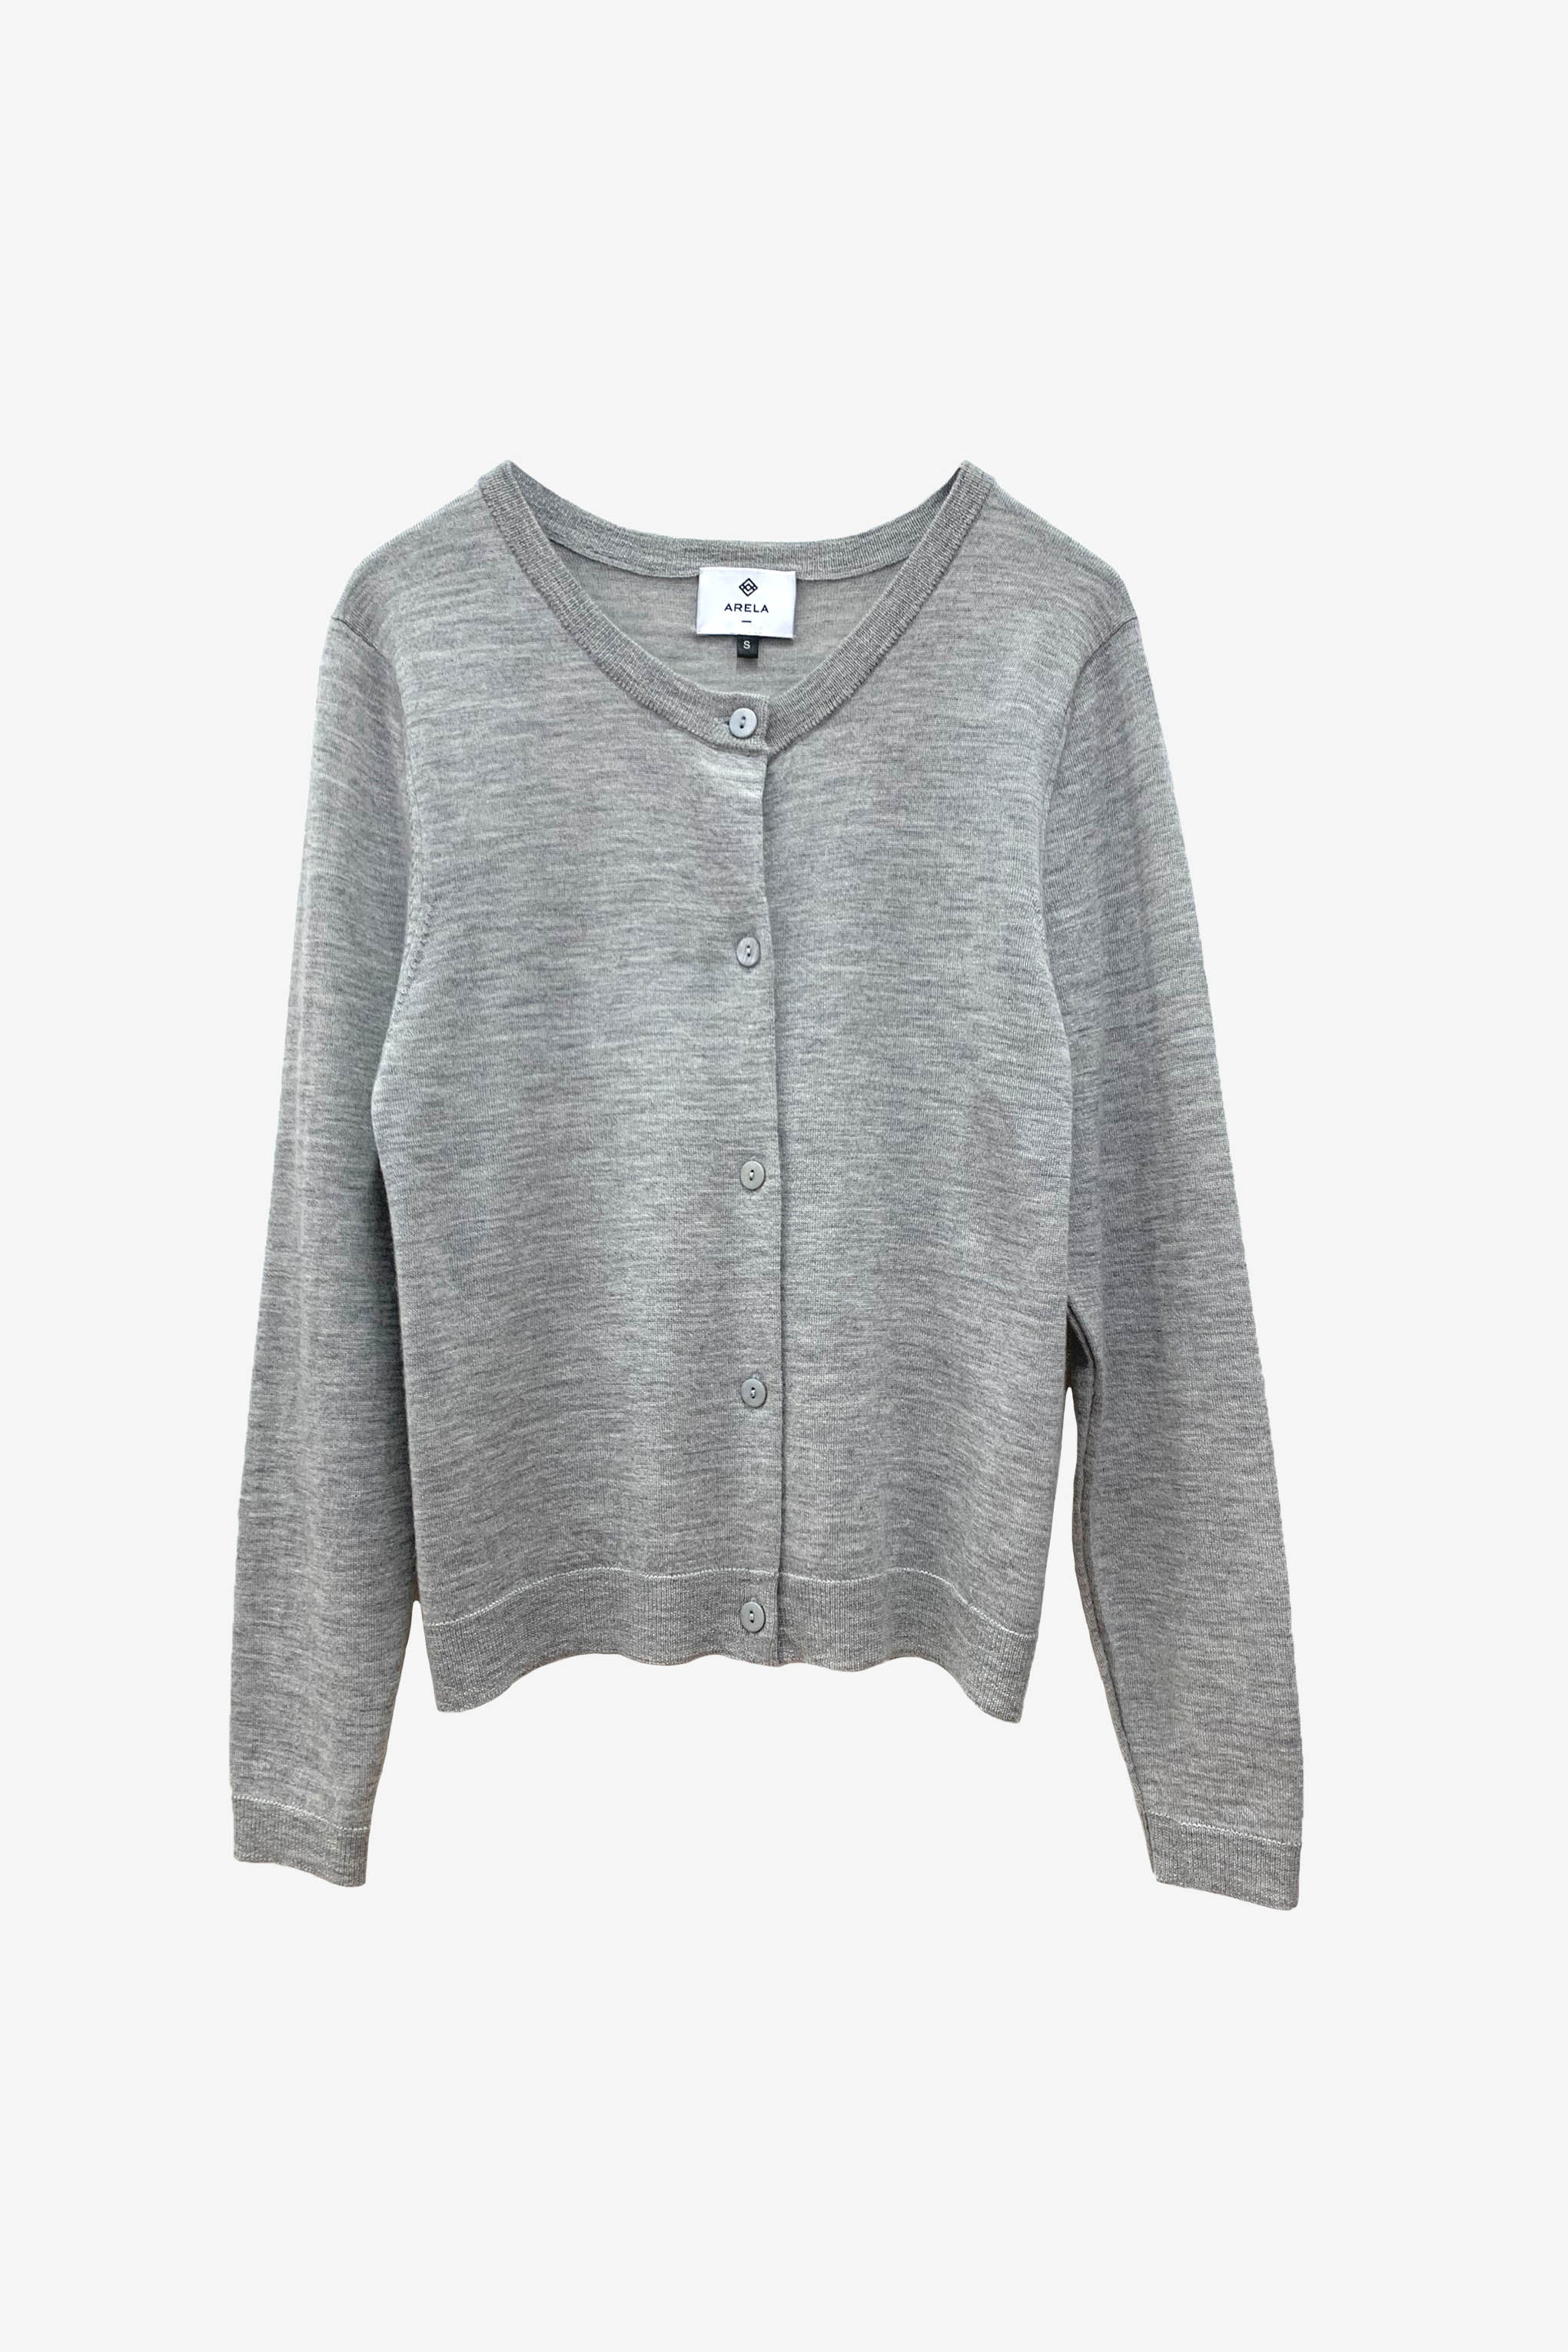 For Good: Light grey Cardigan, size S